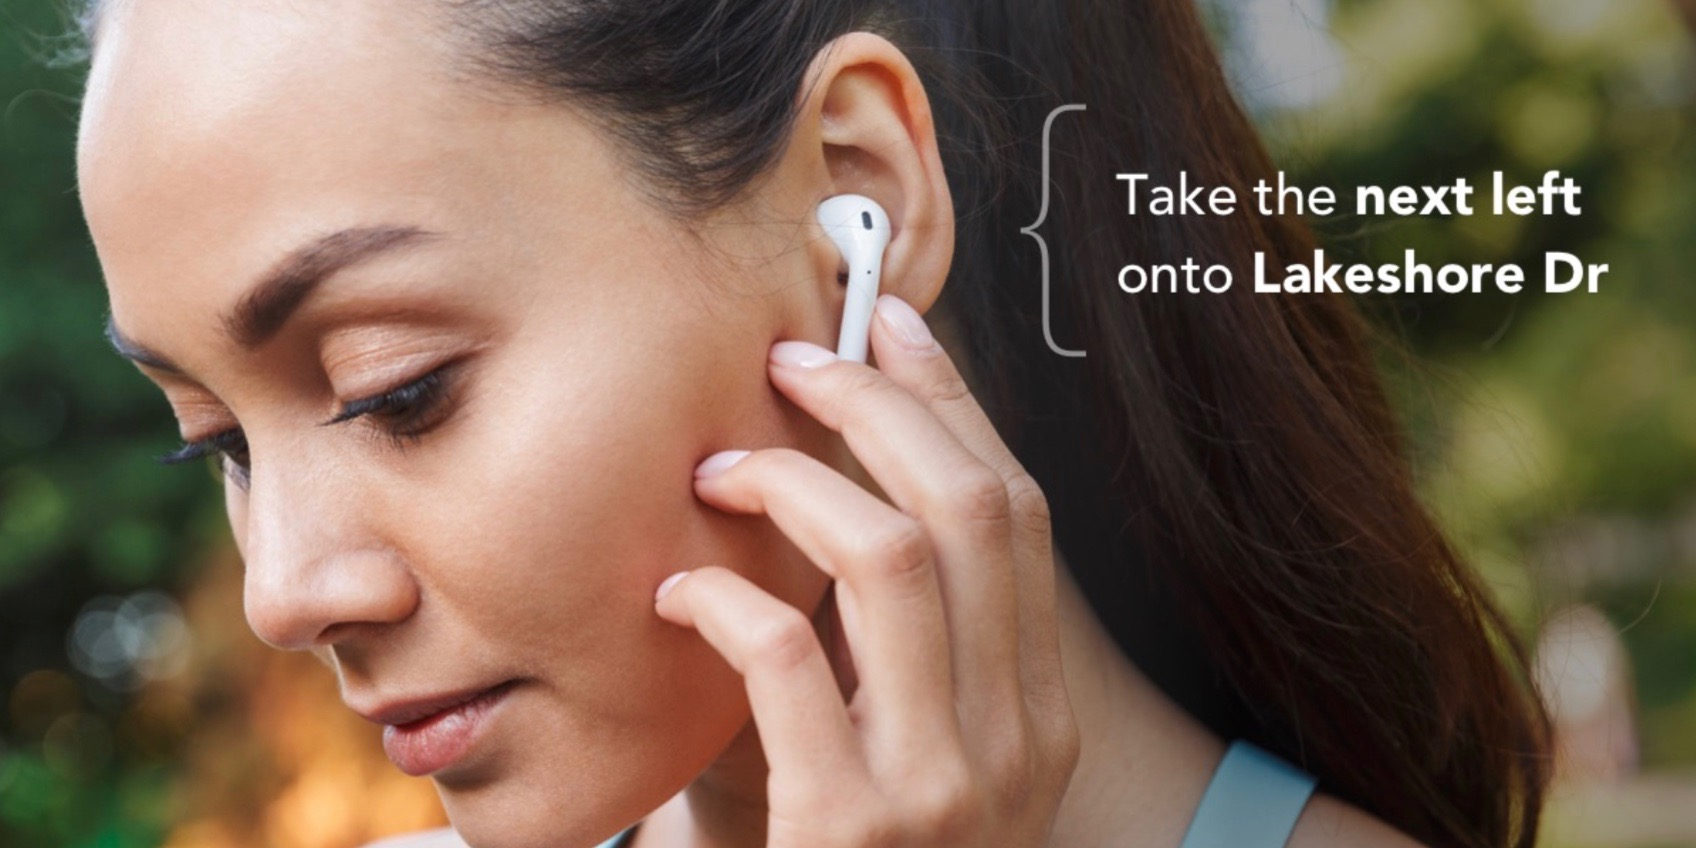 Footpath custom navigation app for runners and cyclists launches audio guidance with AirPods double-tap support